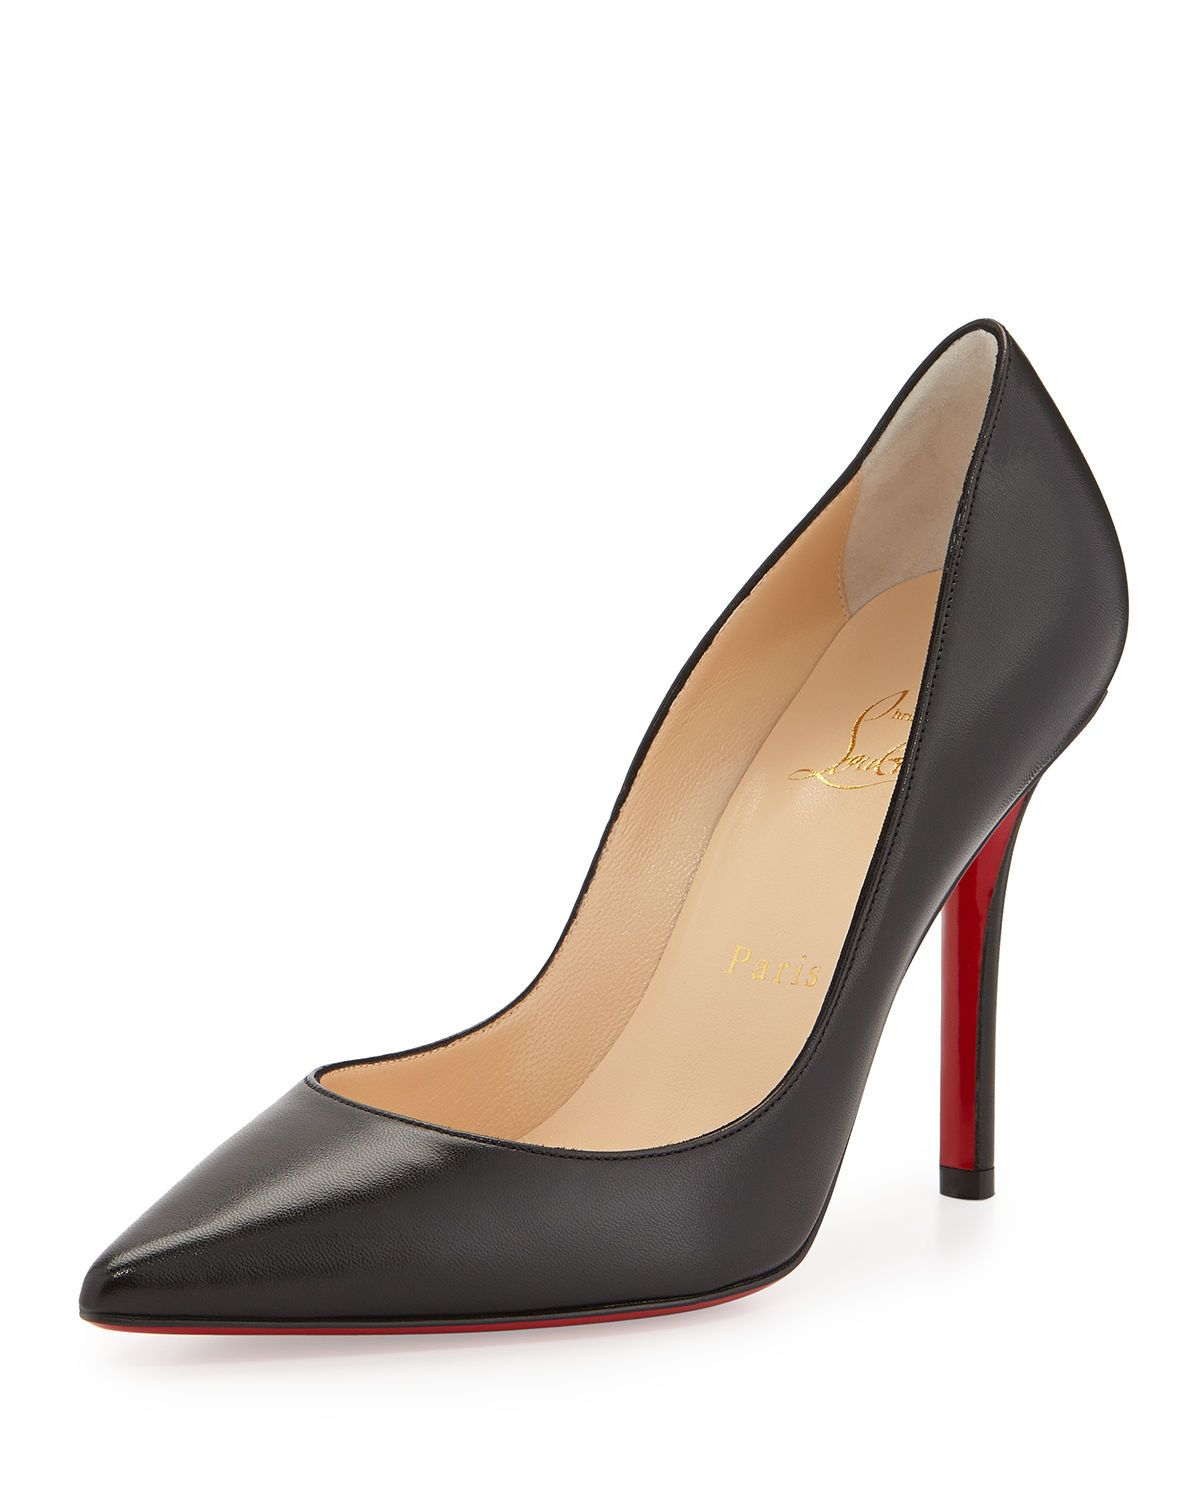 sale retailer b95bb 18f90 Christian Louboutin Apostrophy Pointed Red-Sole Pump in 2019 ...